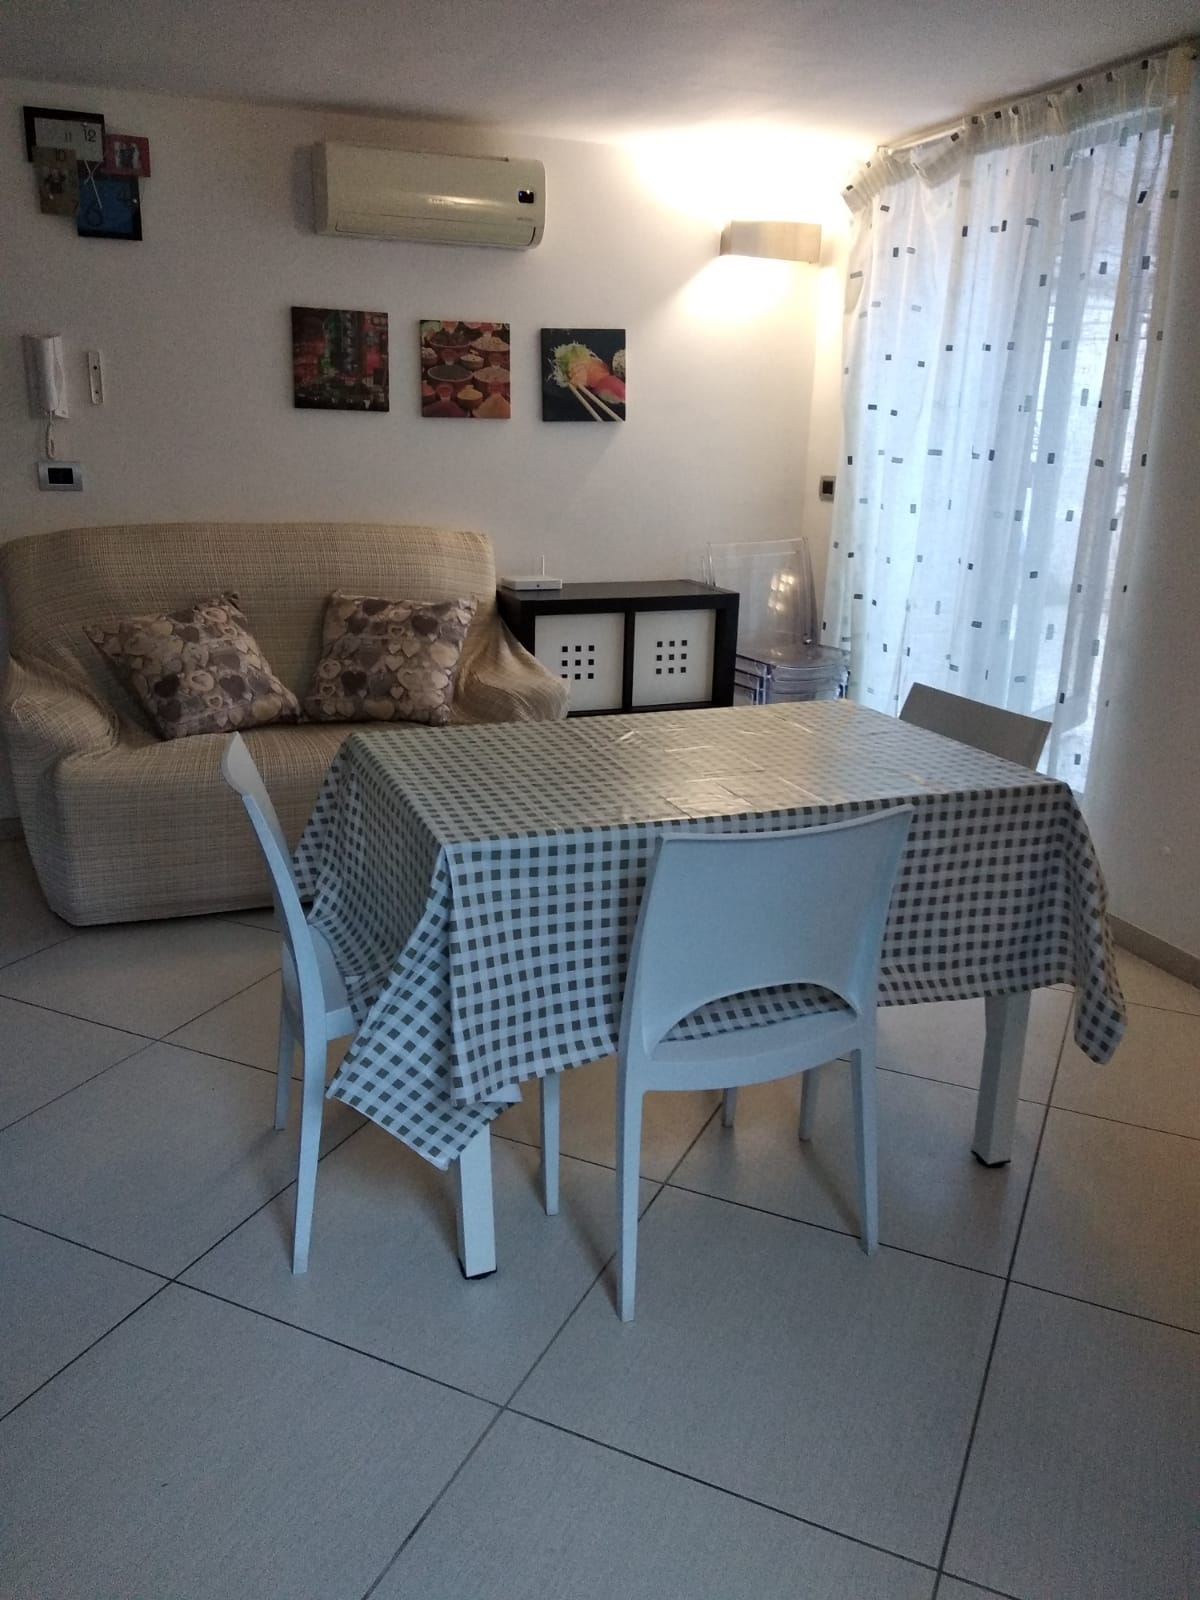 Luci Led Per Cucina casa di vale e carlo mansarda - apartments for rent in